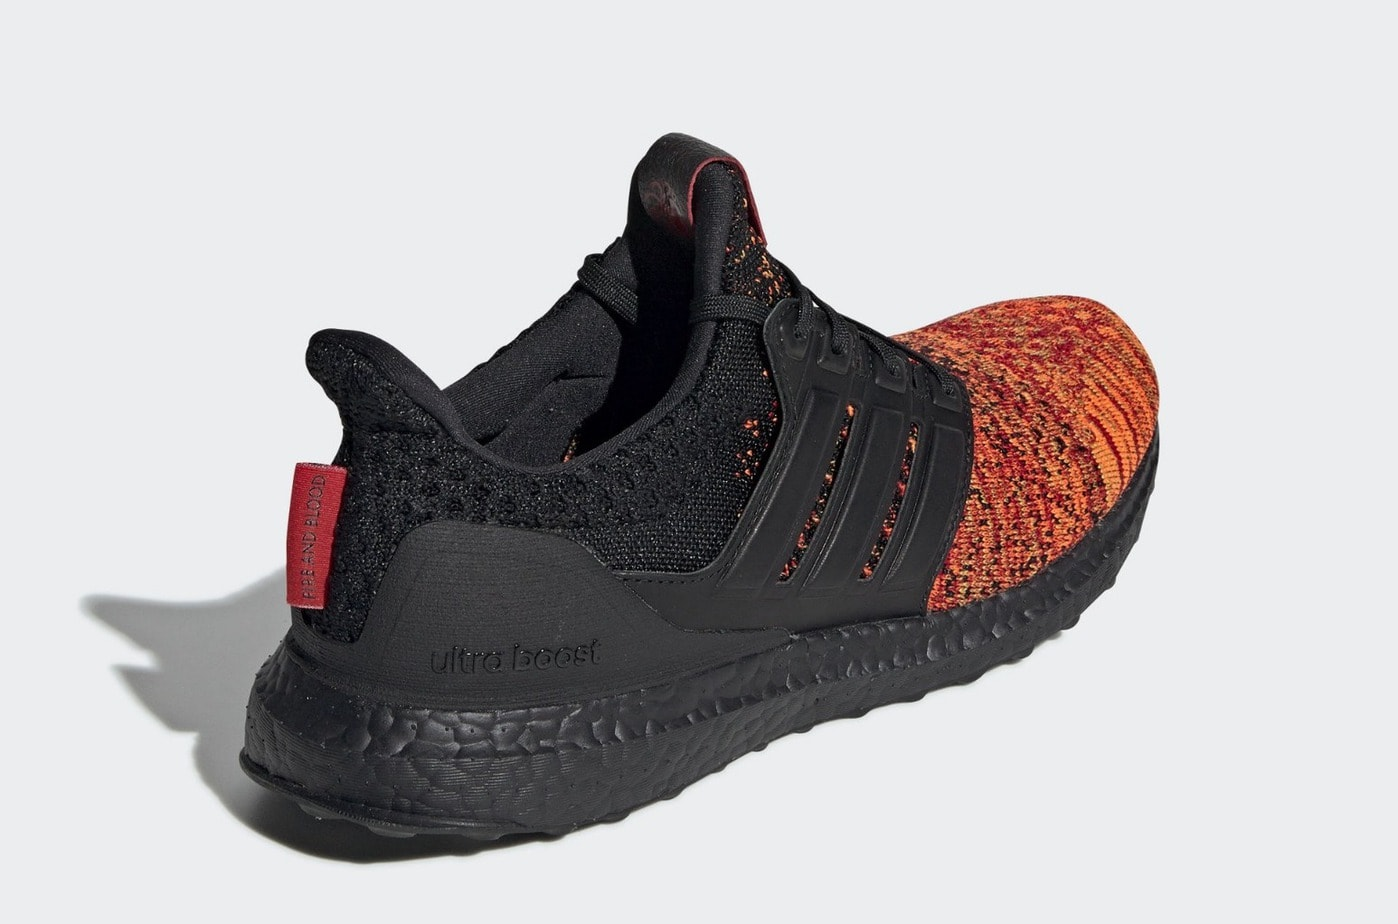 "b9d99a64e0fdf Game of Thrones x adidas Ultra Boost ""House Targaryen Dragons"" Release  Date  February 7th"